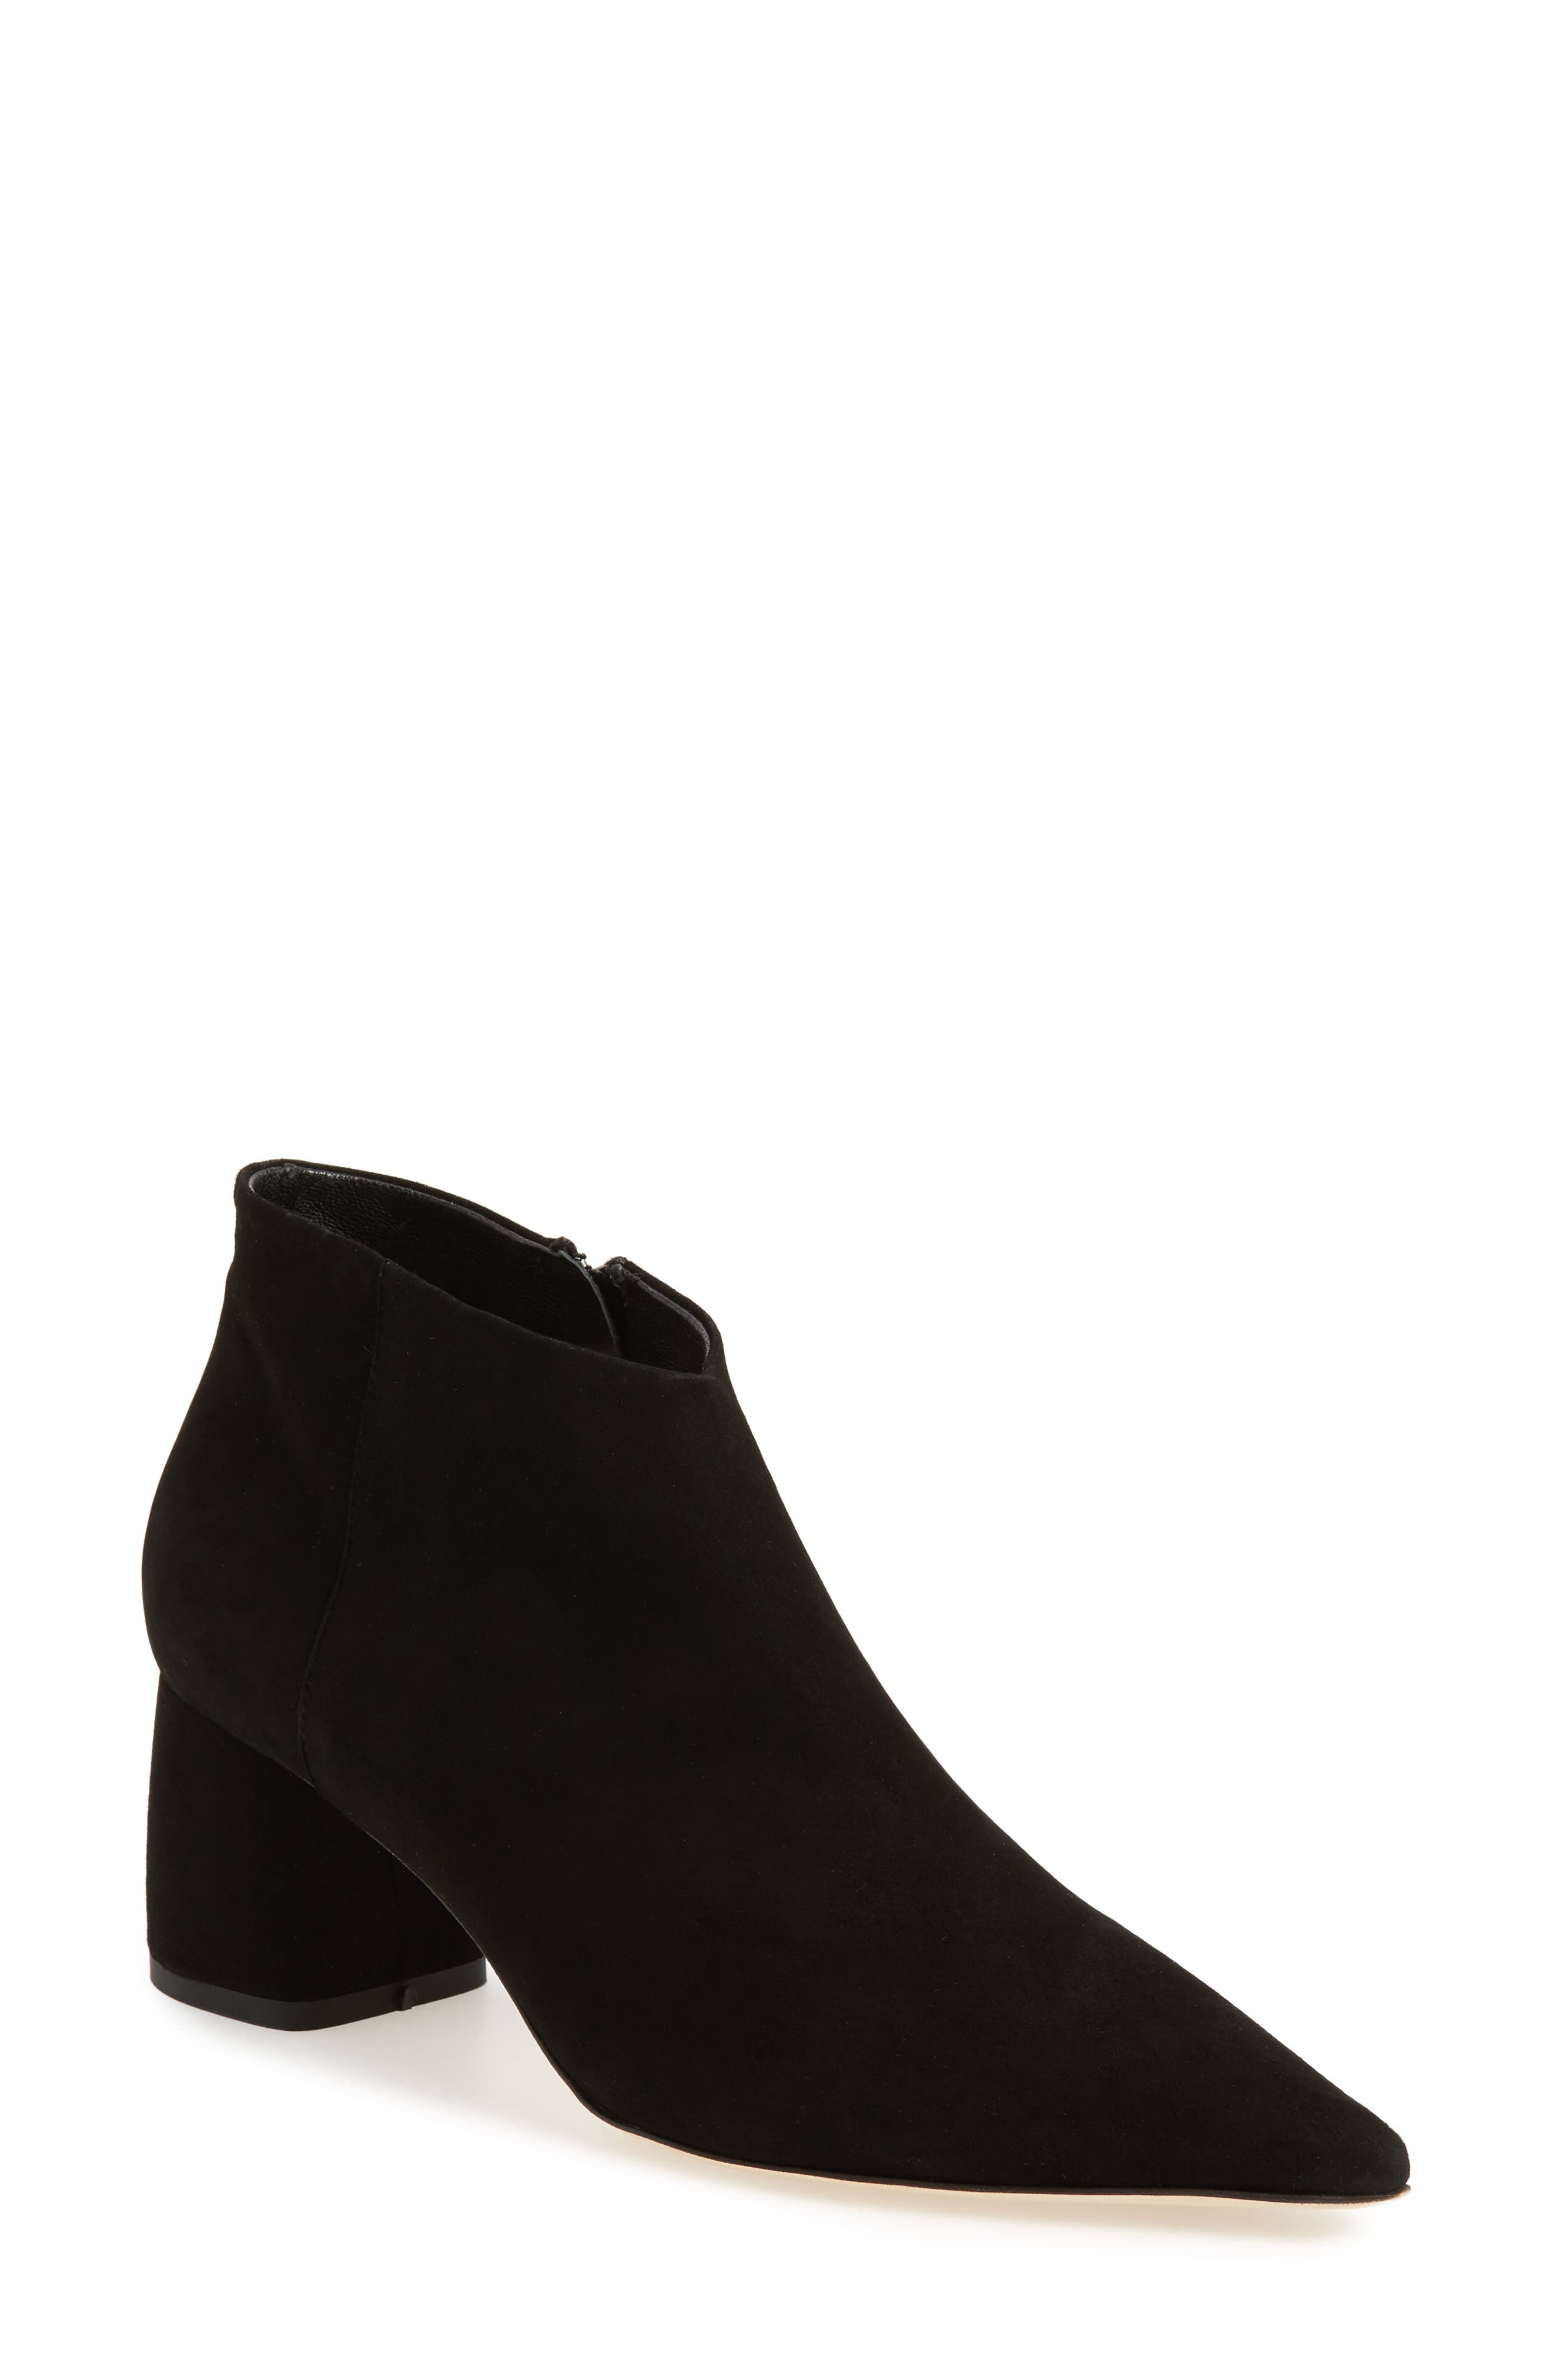 Butter Whistle Pointy Toe Bootie,                         Main,                         color, 001